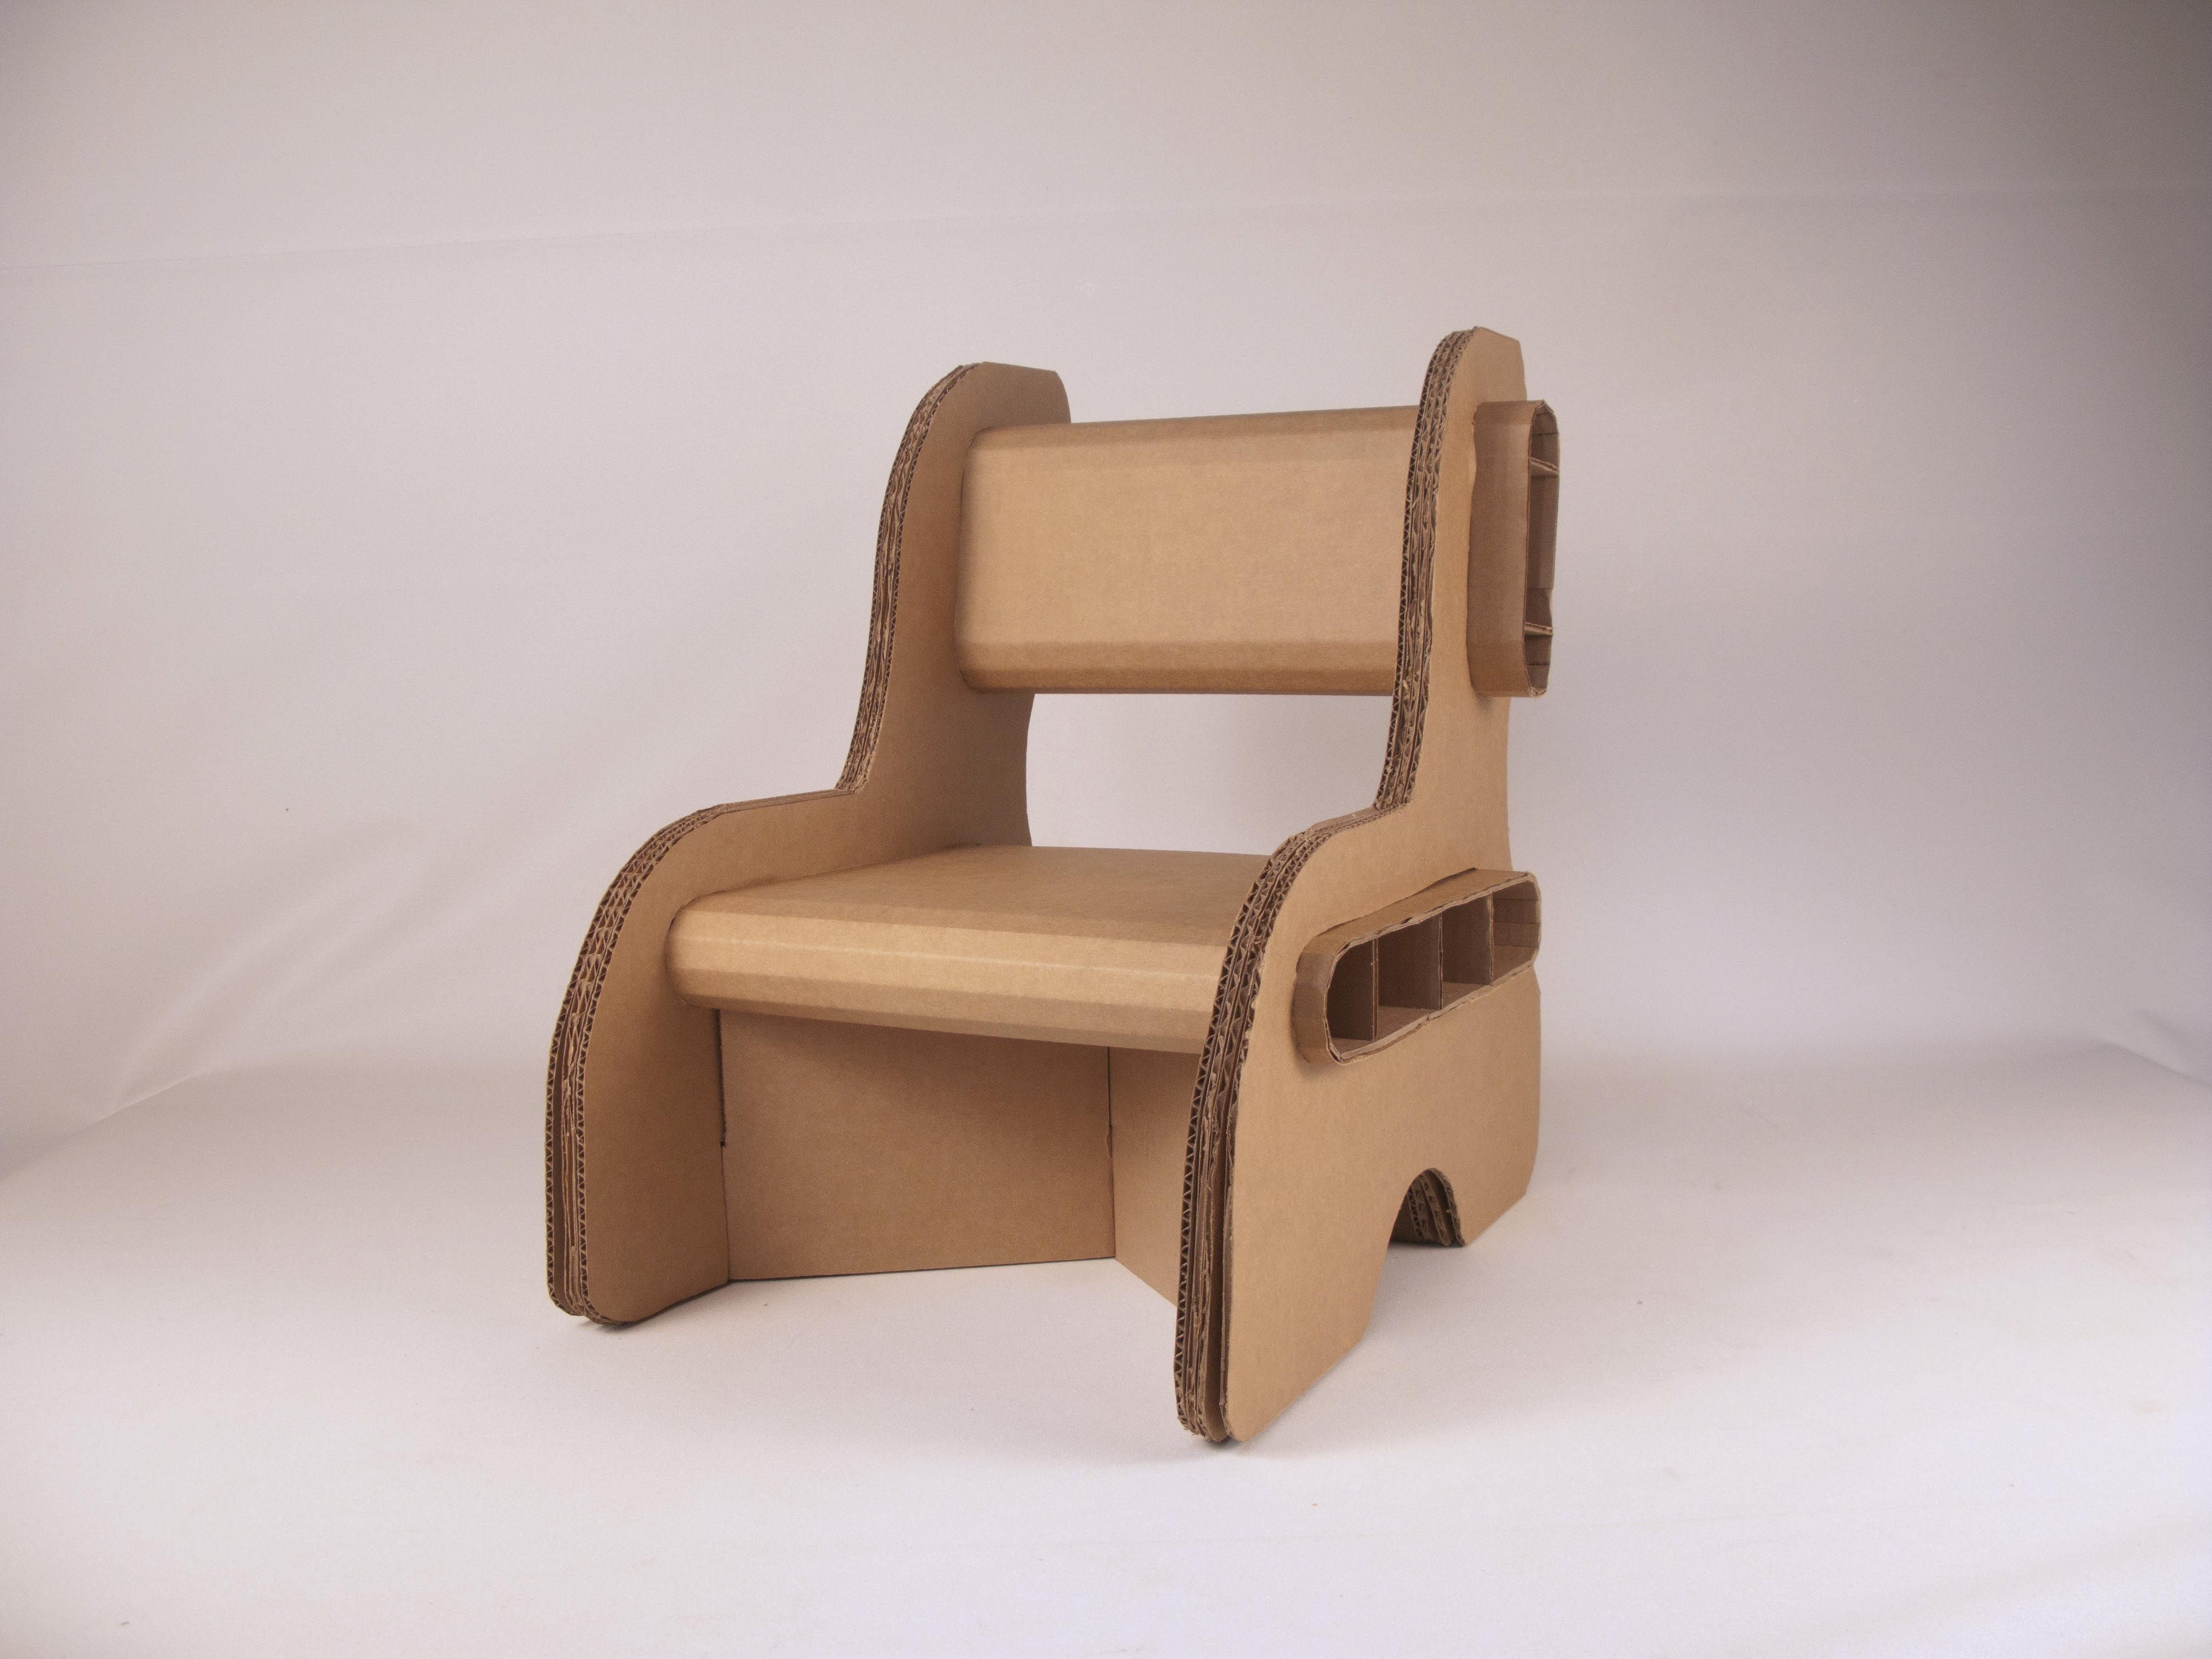 cardboard chair template Google Search cardboard